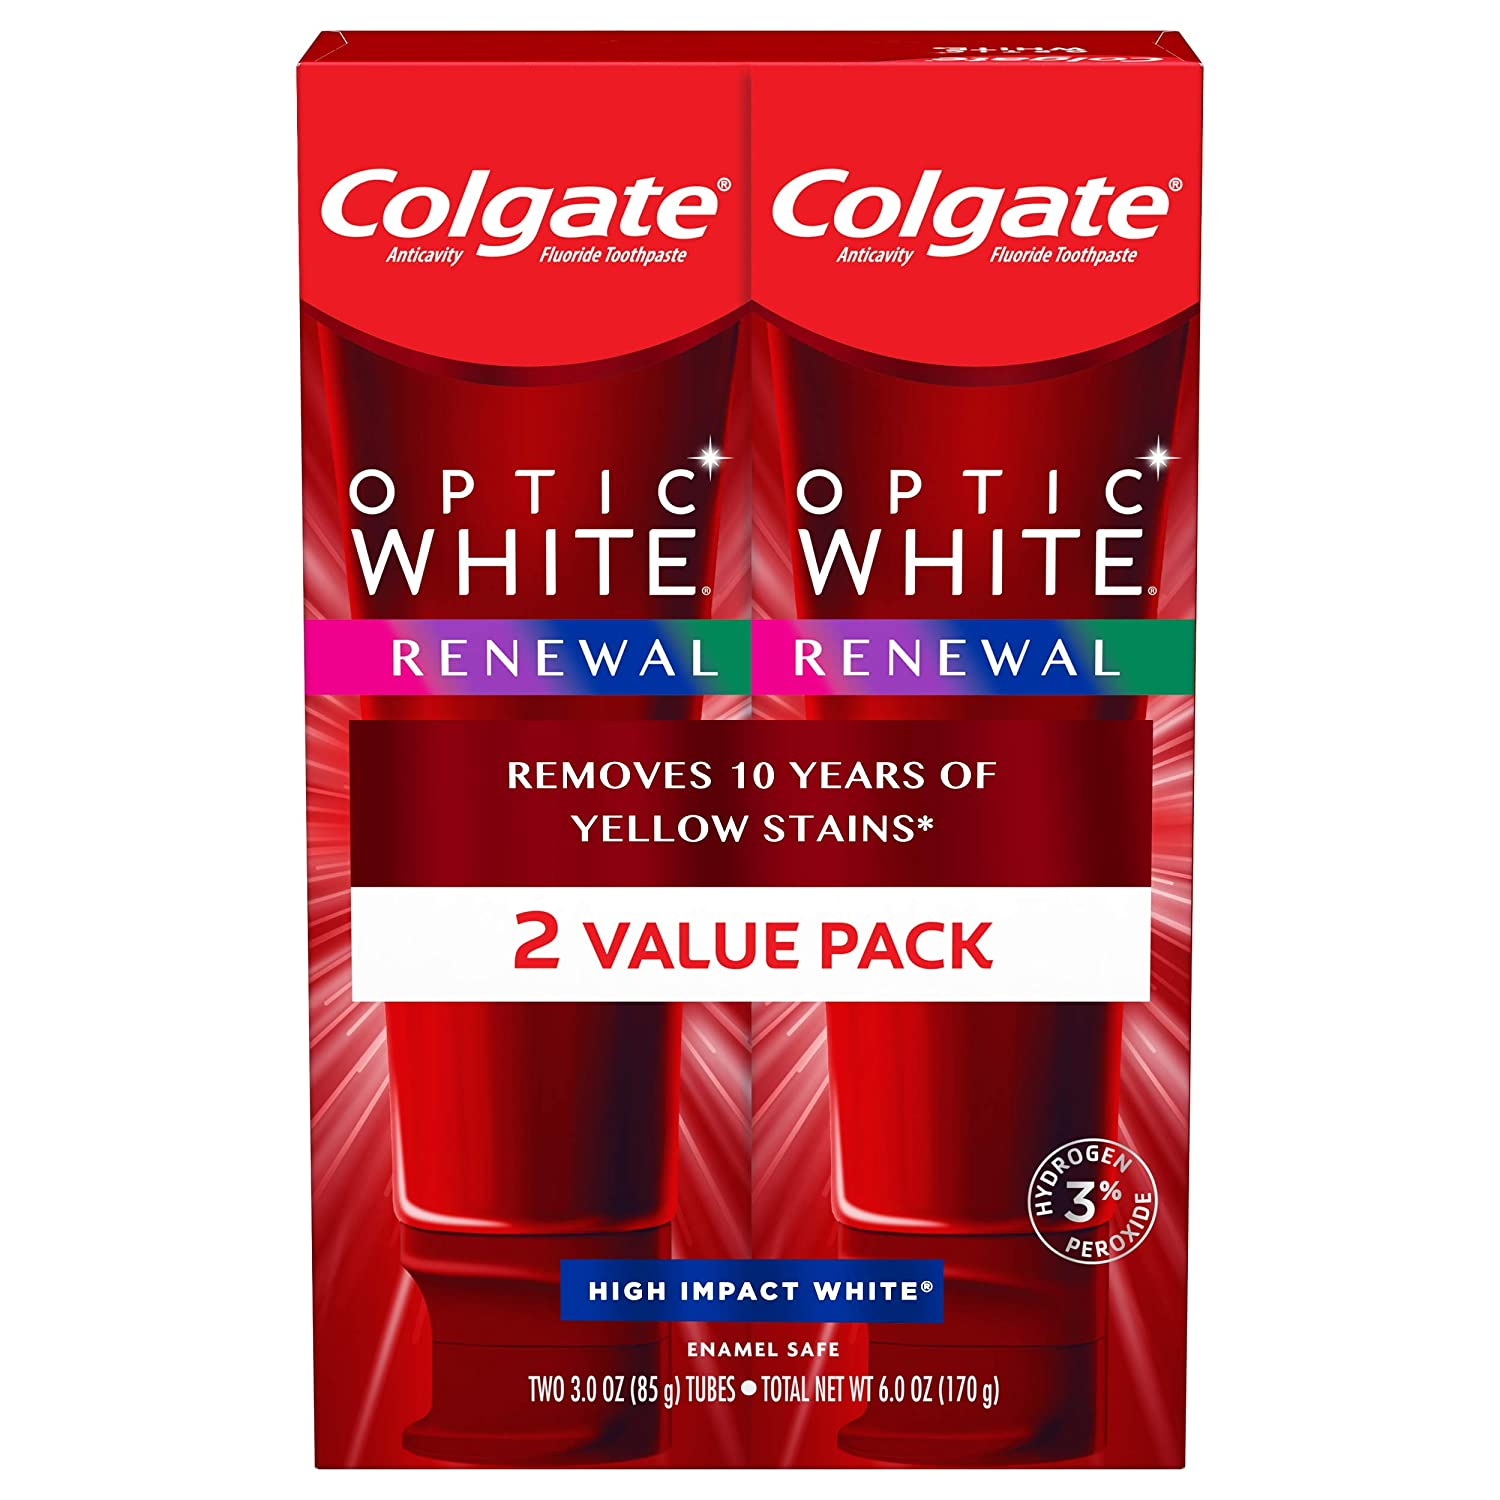 Colgate Optic White Renewal Teeth Whitening Toothpaste, High Impact White - 3 Ounce (2 Pack)